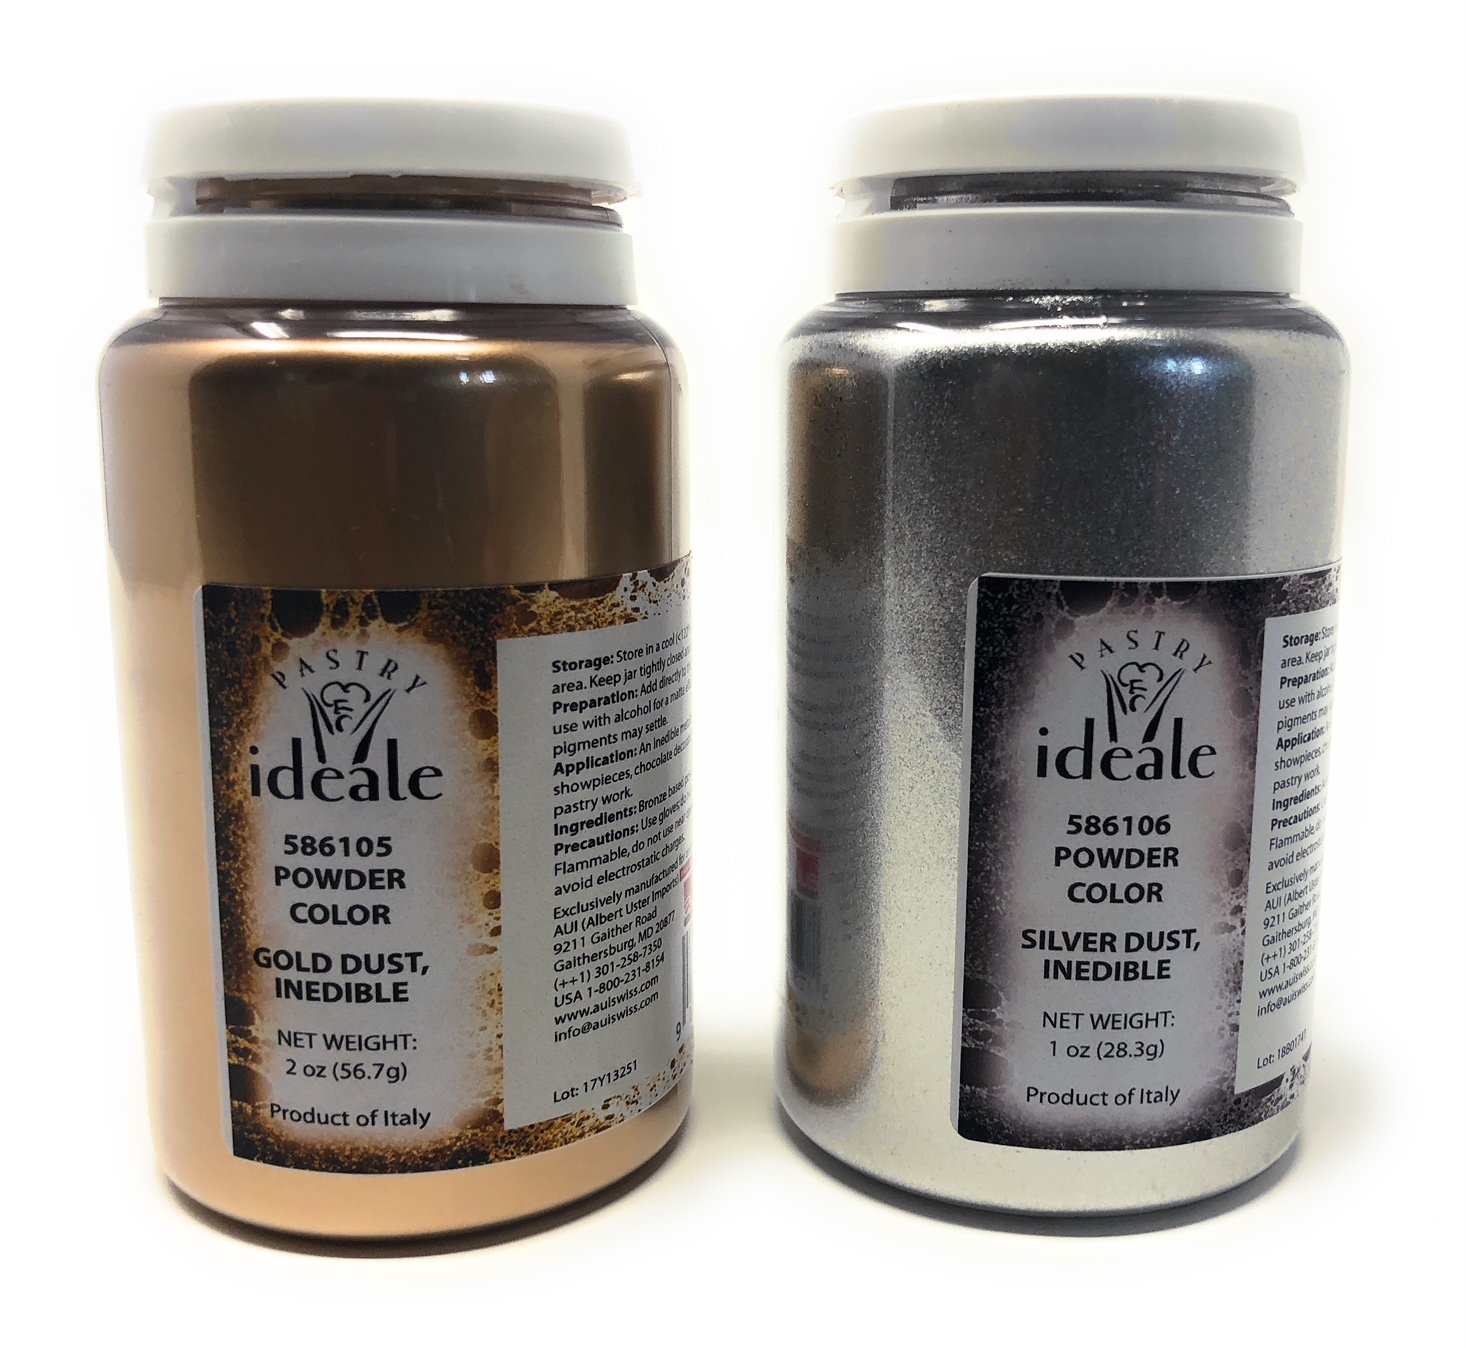 Pastry Ideale Gold Dust & Silver Dust Set (Inedible)